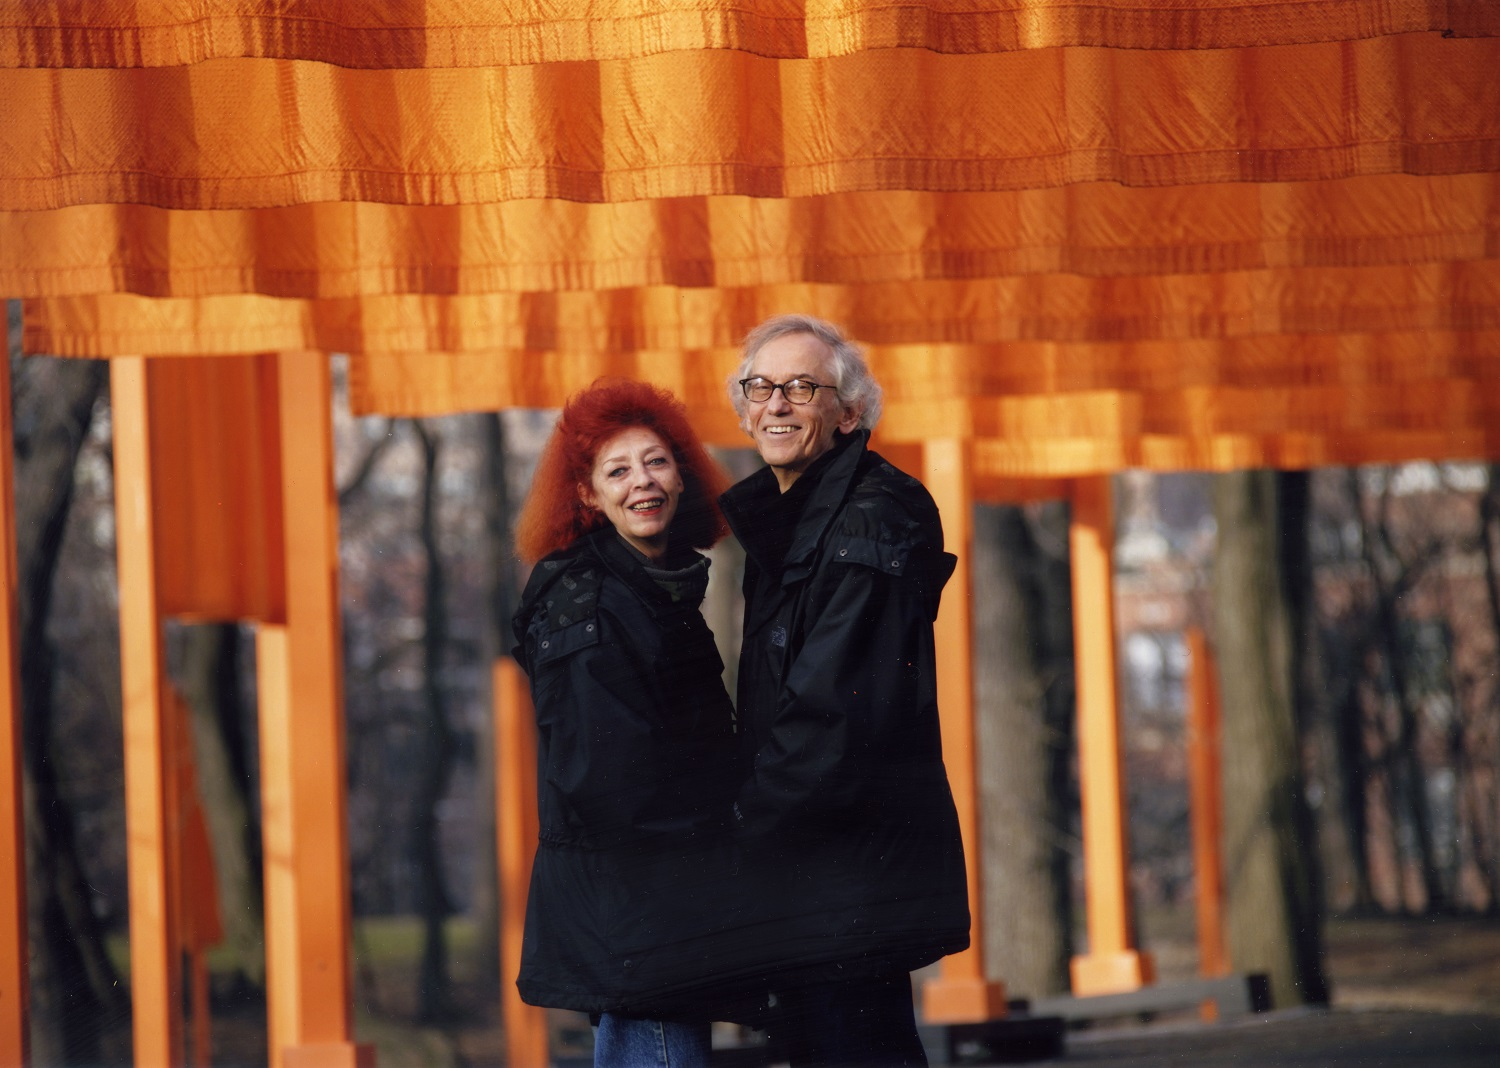 Sotheby's to Offer Personal Art Collection Of Christo and Jeanne-Claude